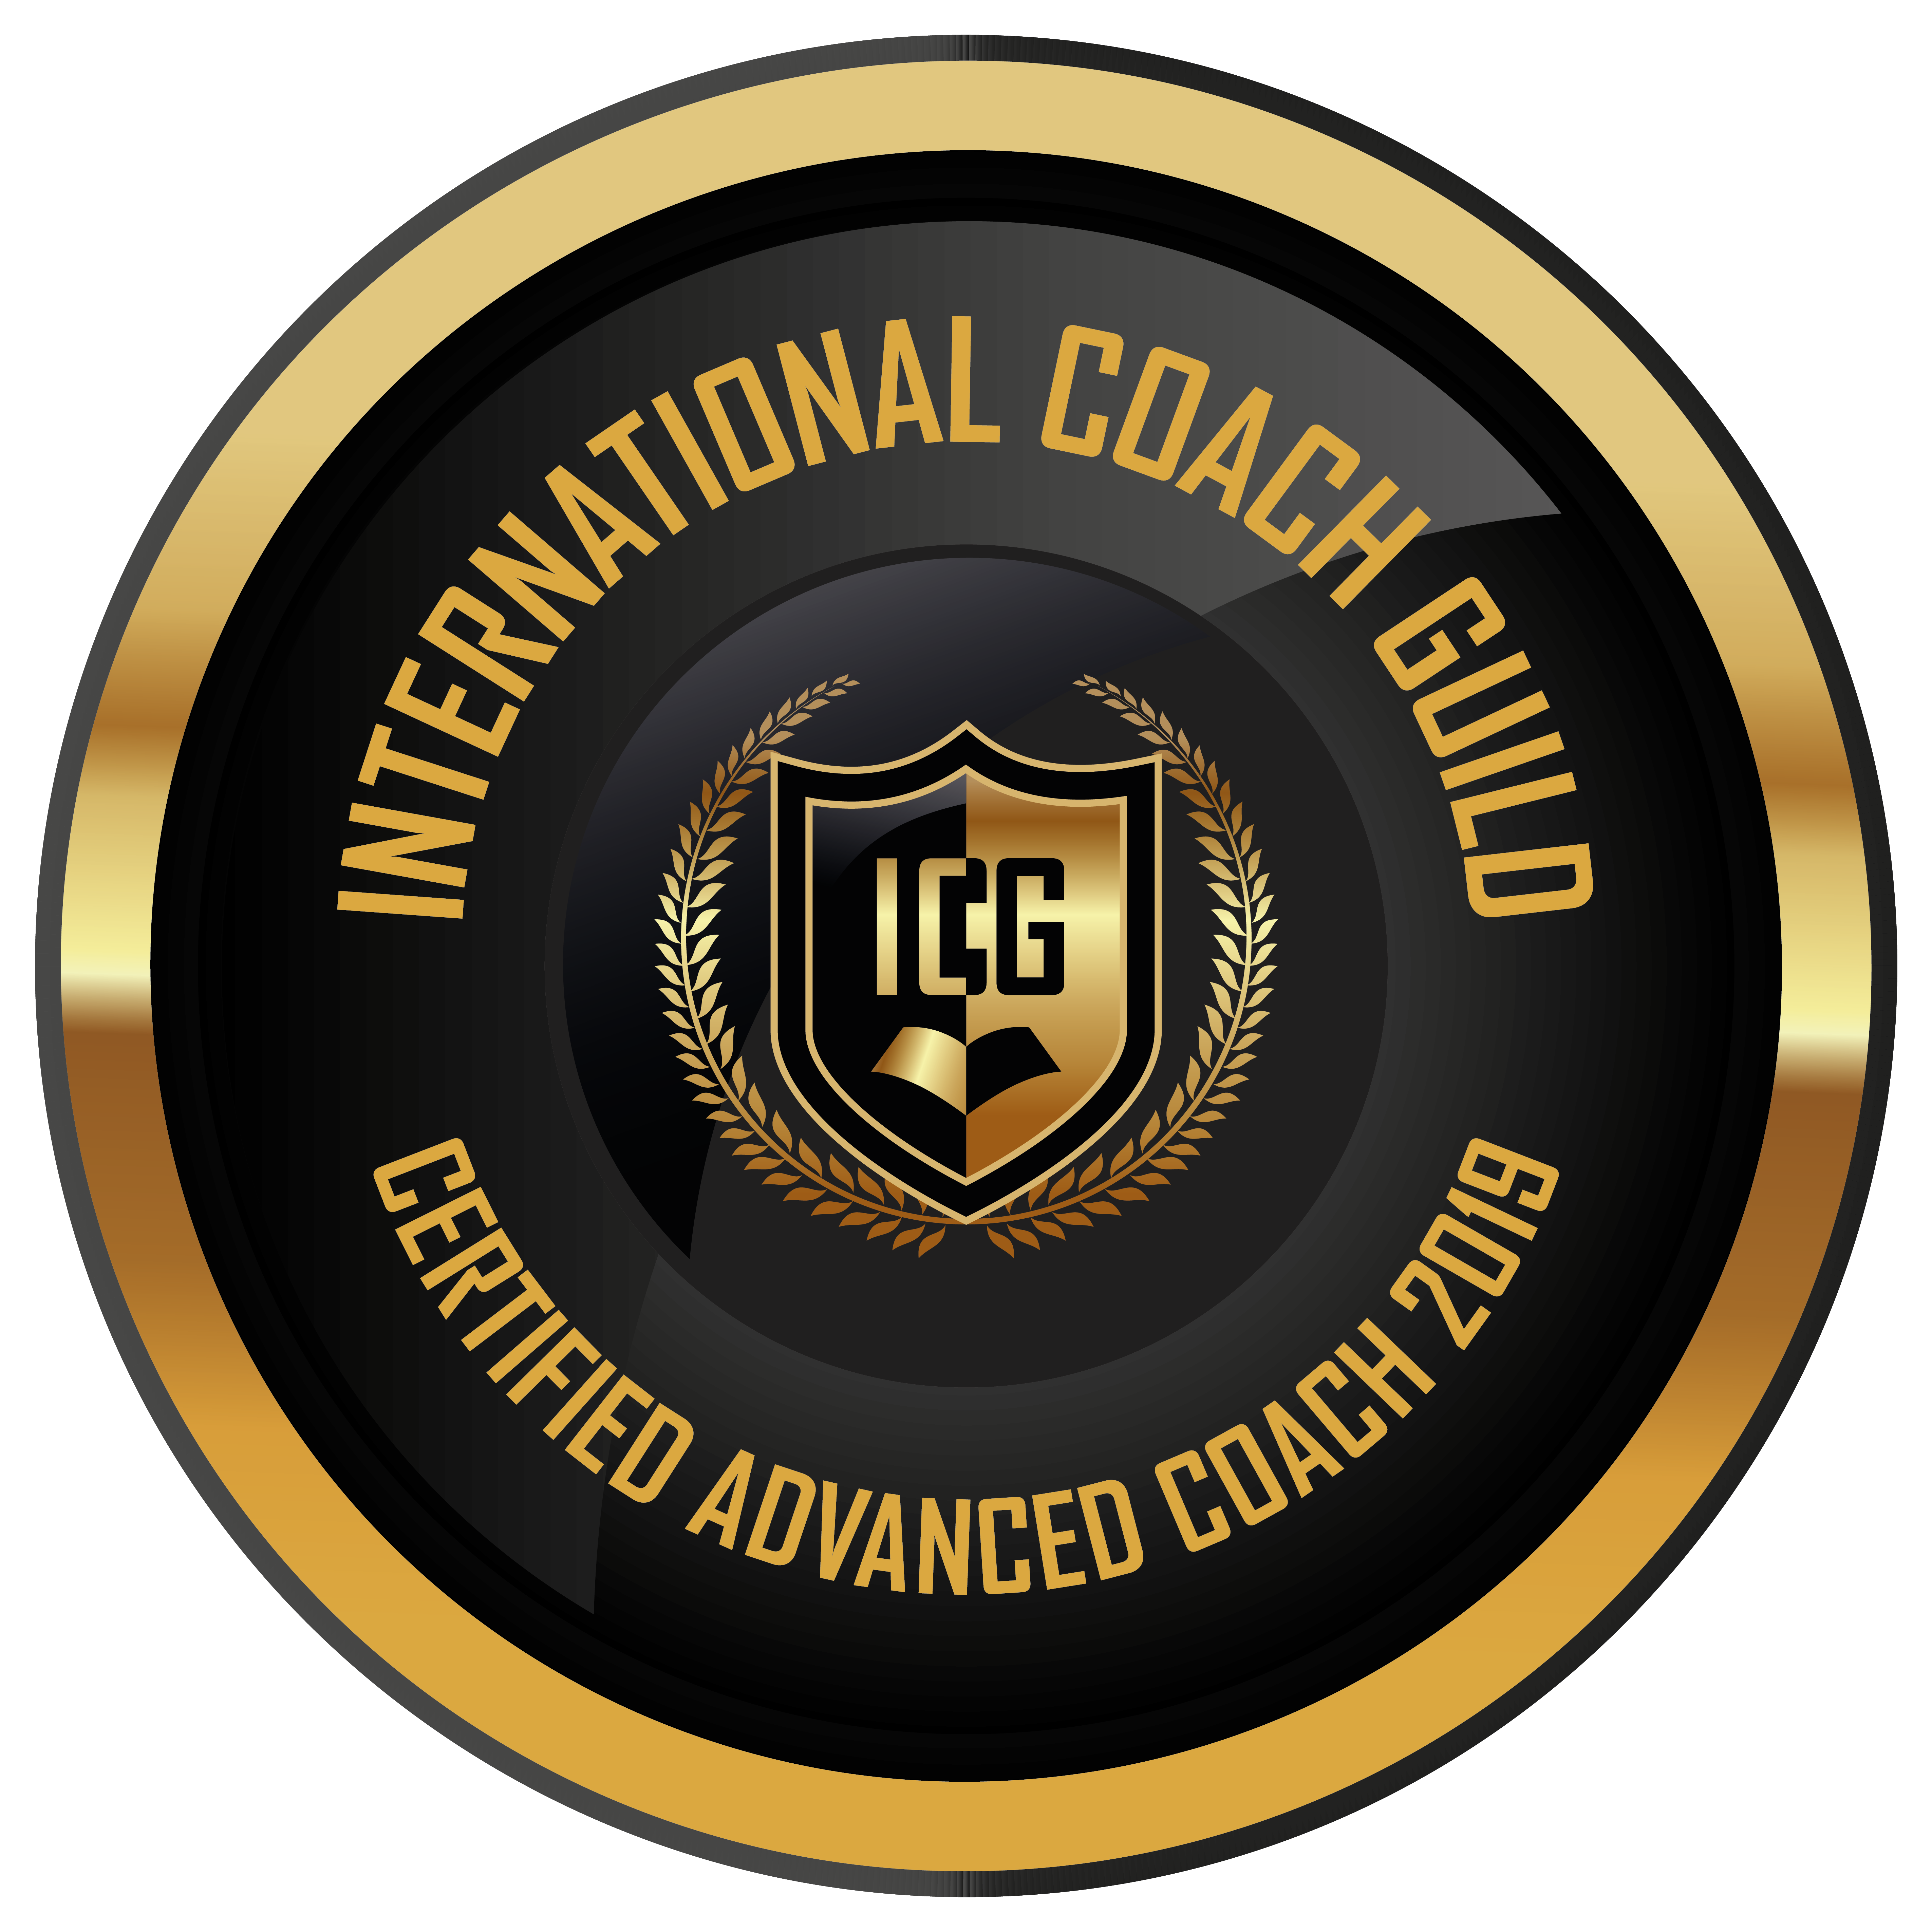 ICG Certified Advanced Coach 2019 large